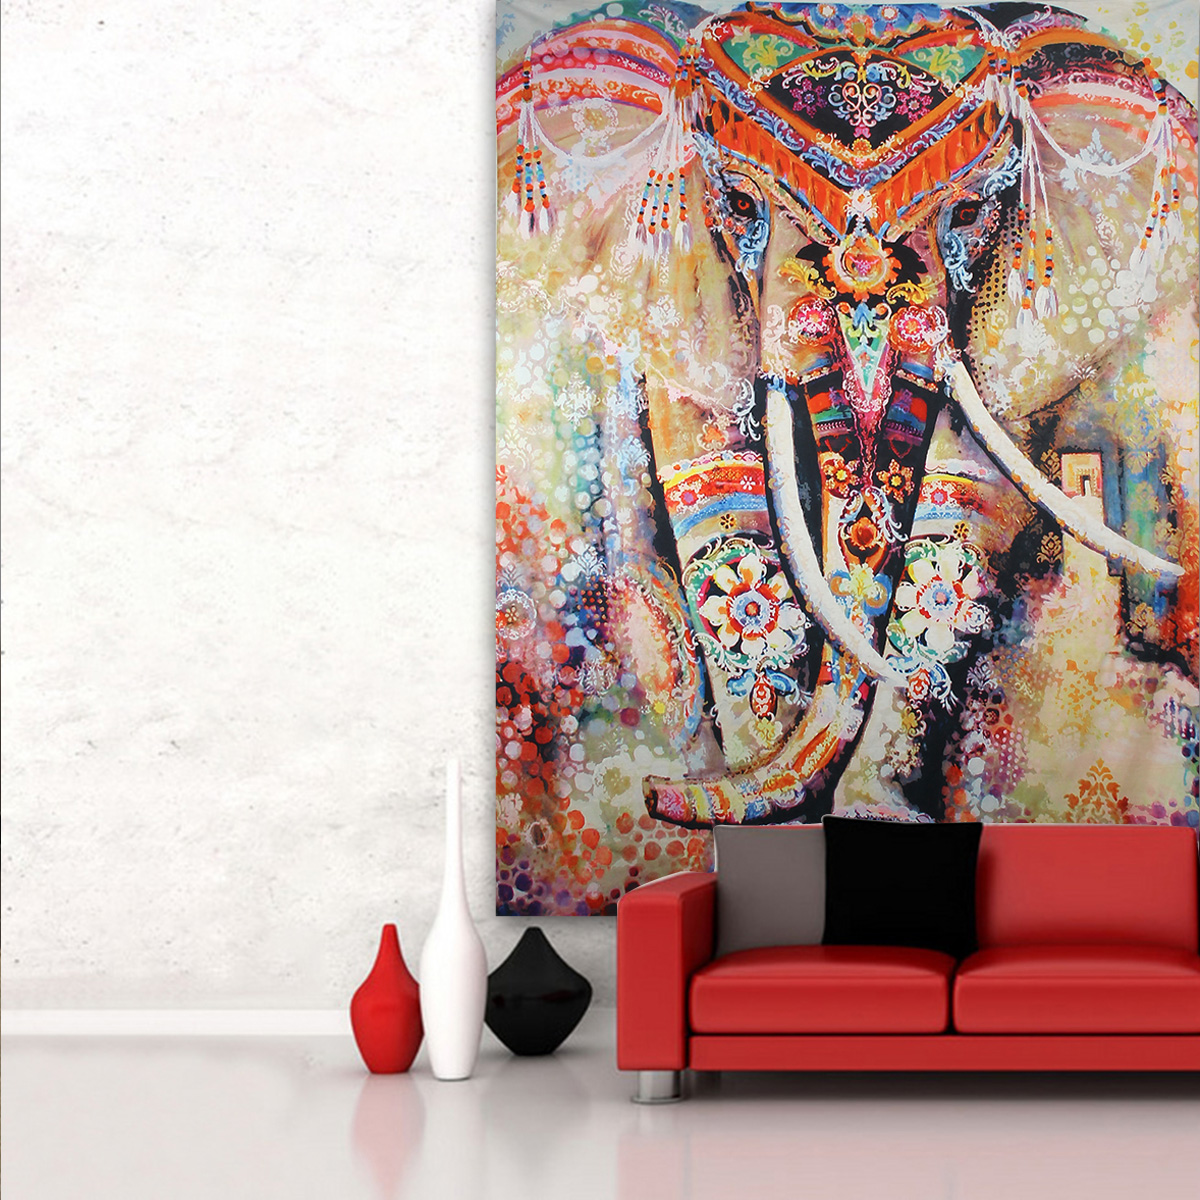 Elephant Mandala Tapestry Throw Towel Hippie Tapestry Floral Printed Home Decor Wall Tapestries Bedspread 210*150CM 7